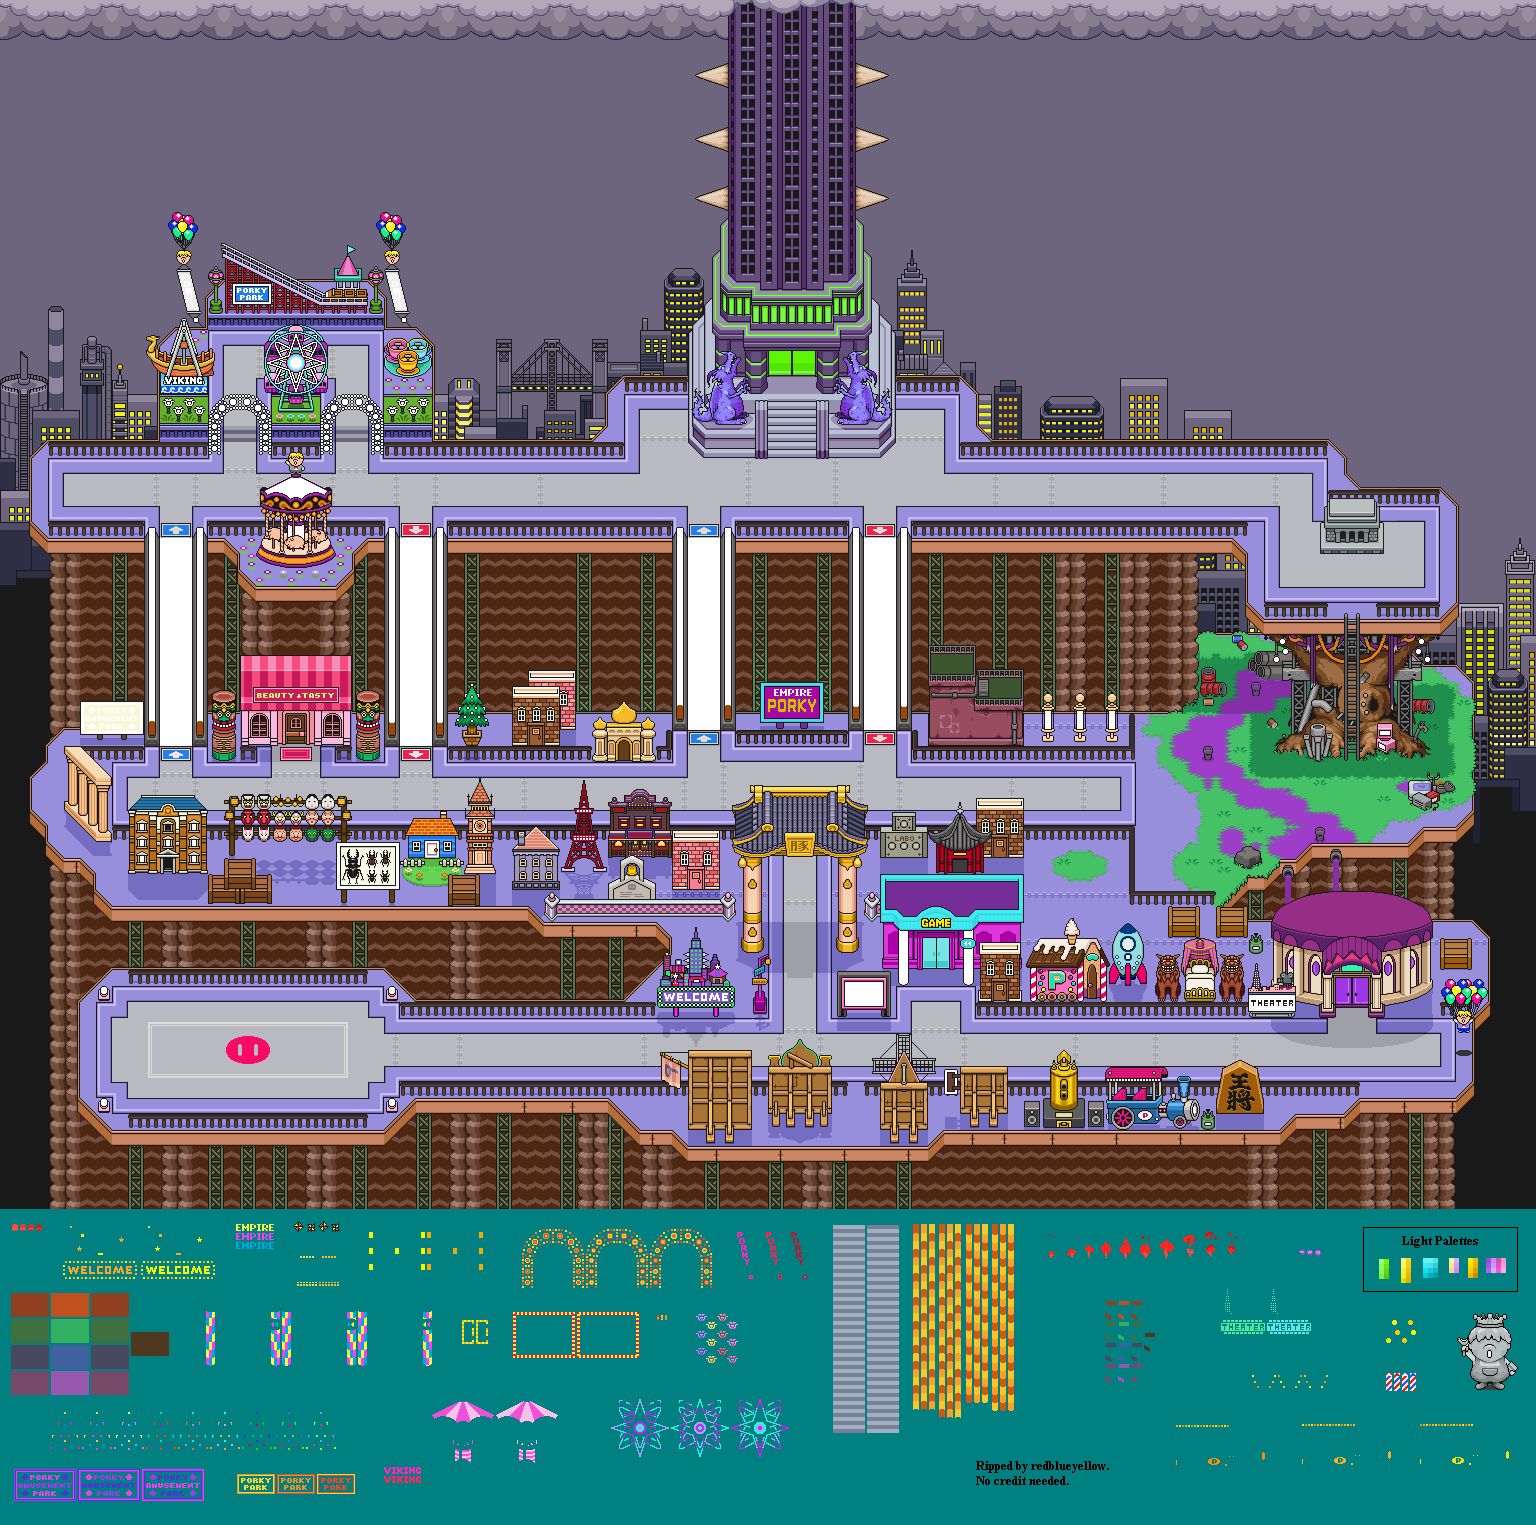 New Pork City (Exterior)